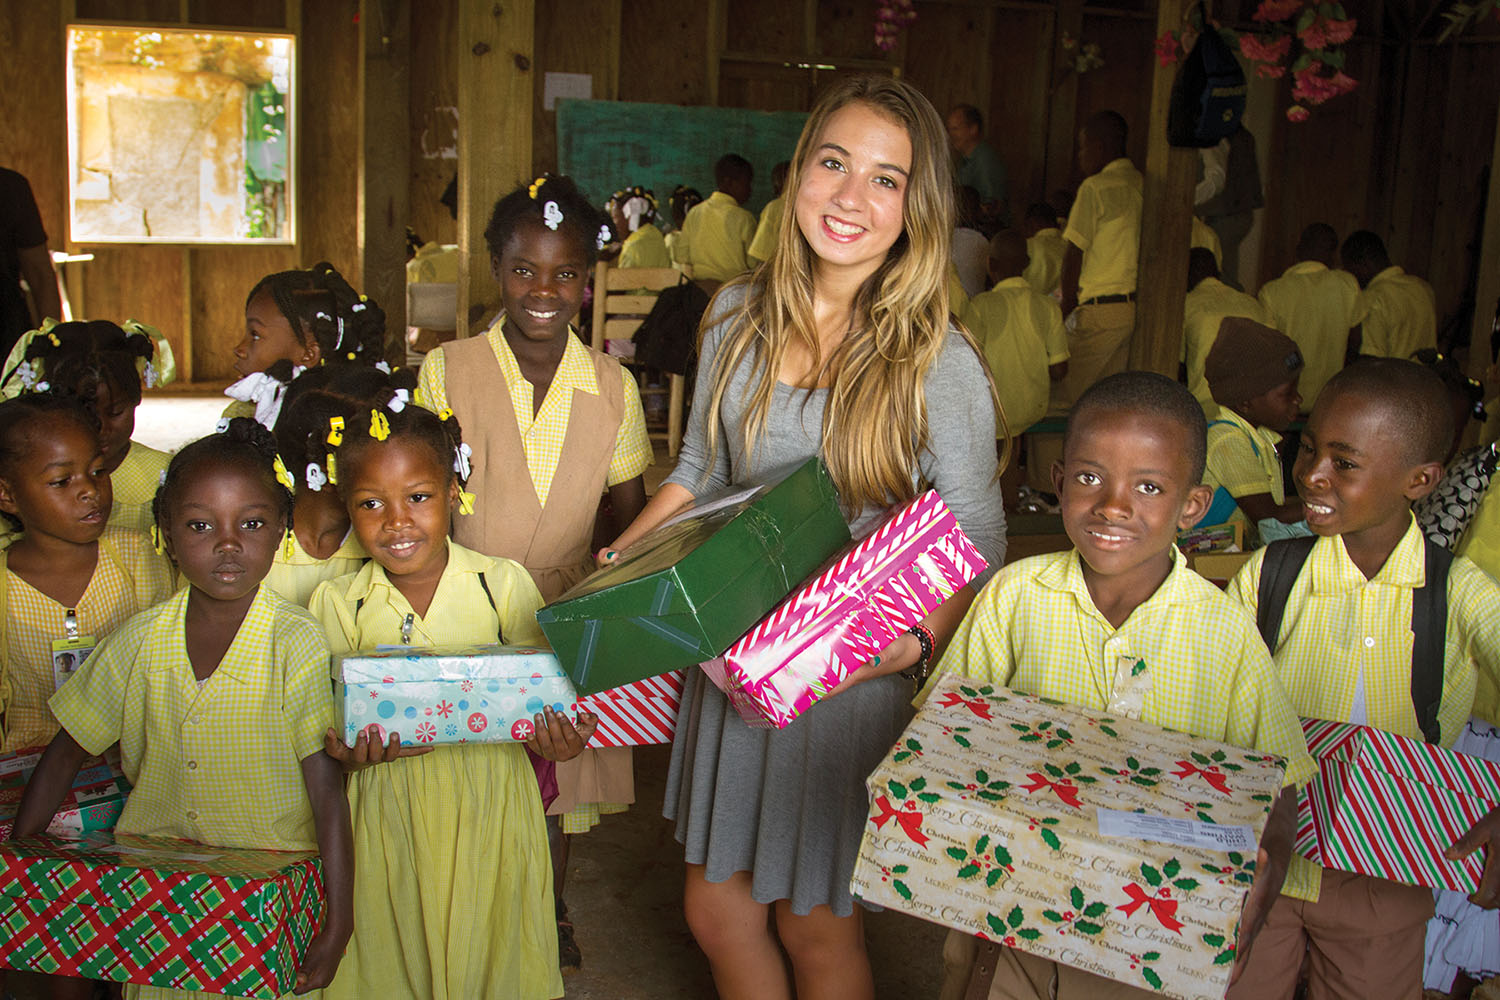 Katie gave gifts to the children knowing each shoebox would bring smiles and hope to a child and their family.